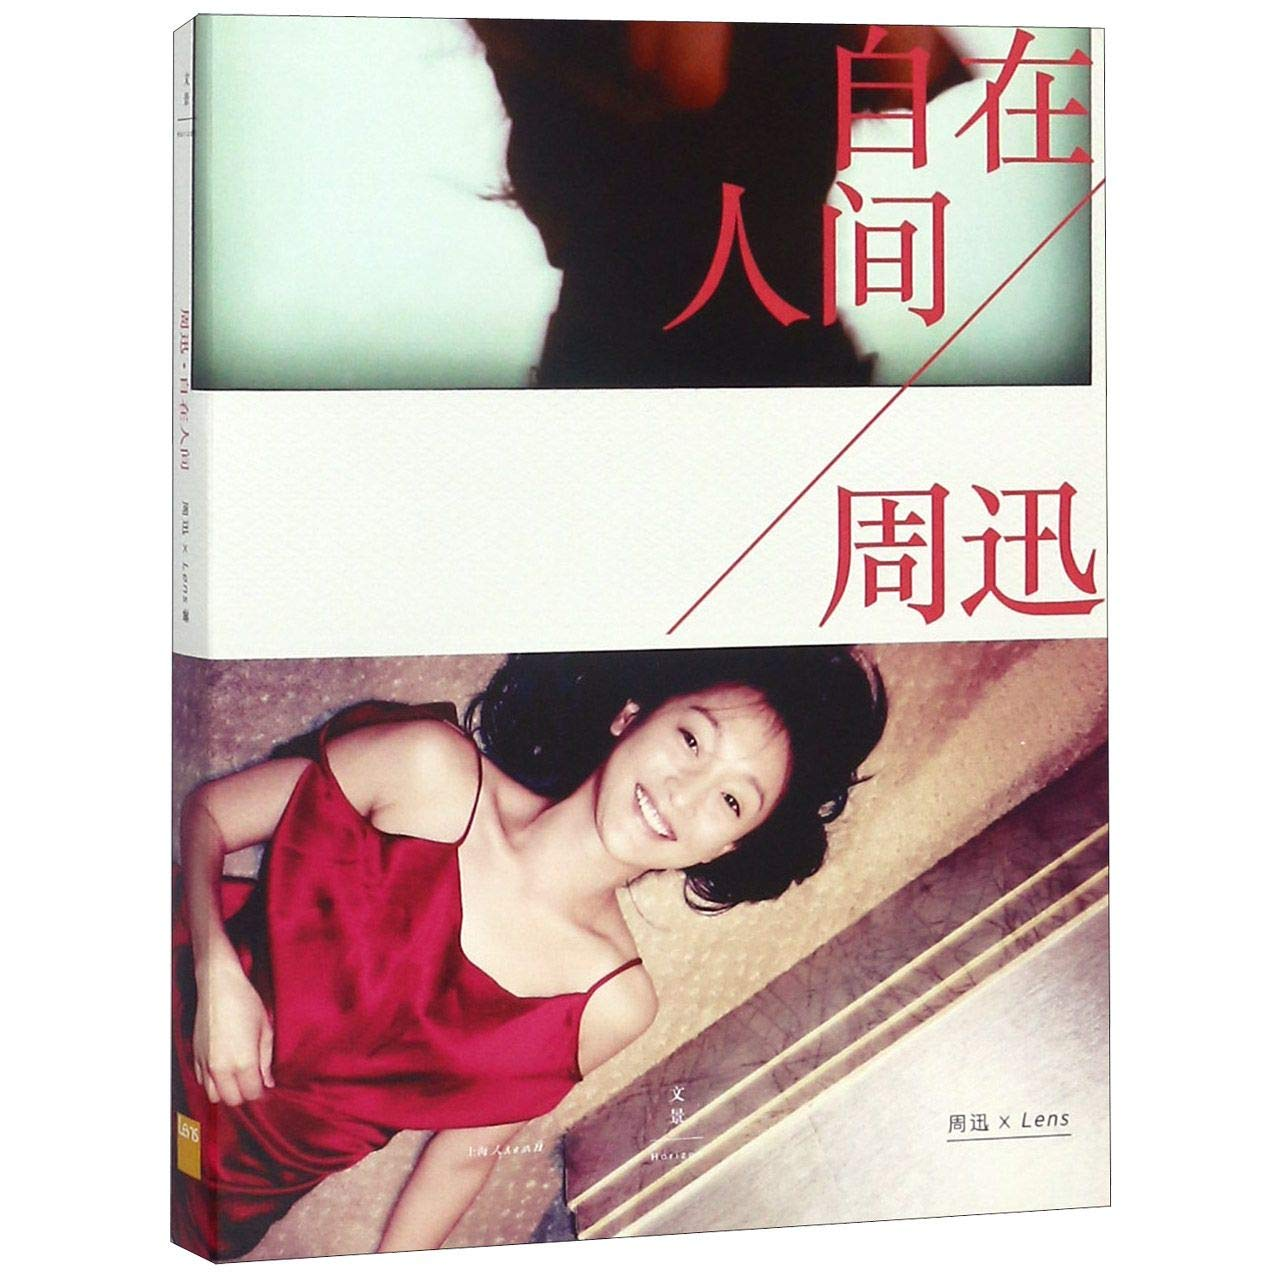 Zhou Xun (A Carefree Life) (Chinese Edition)by Zhou Xun (Author), Lens (Author)